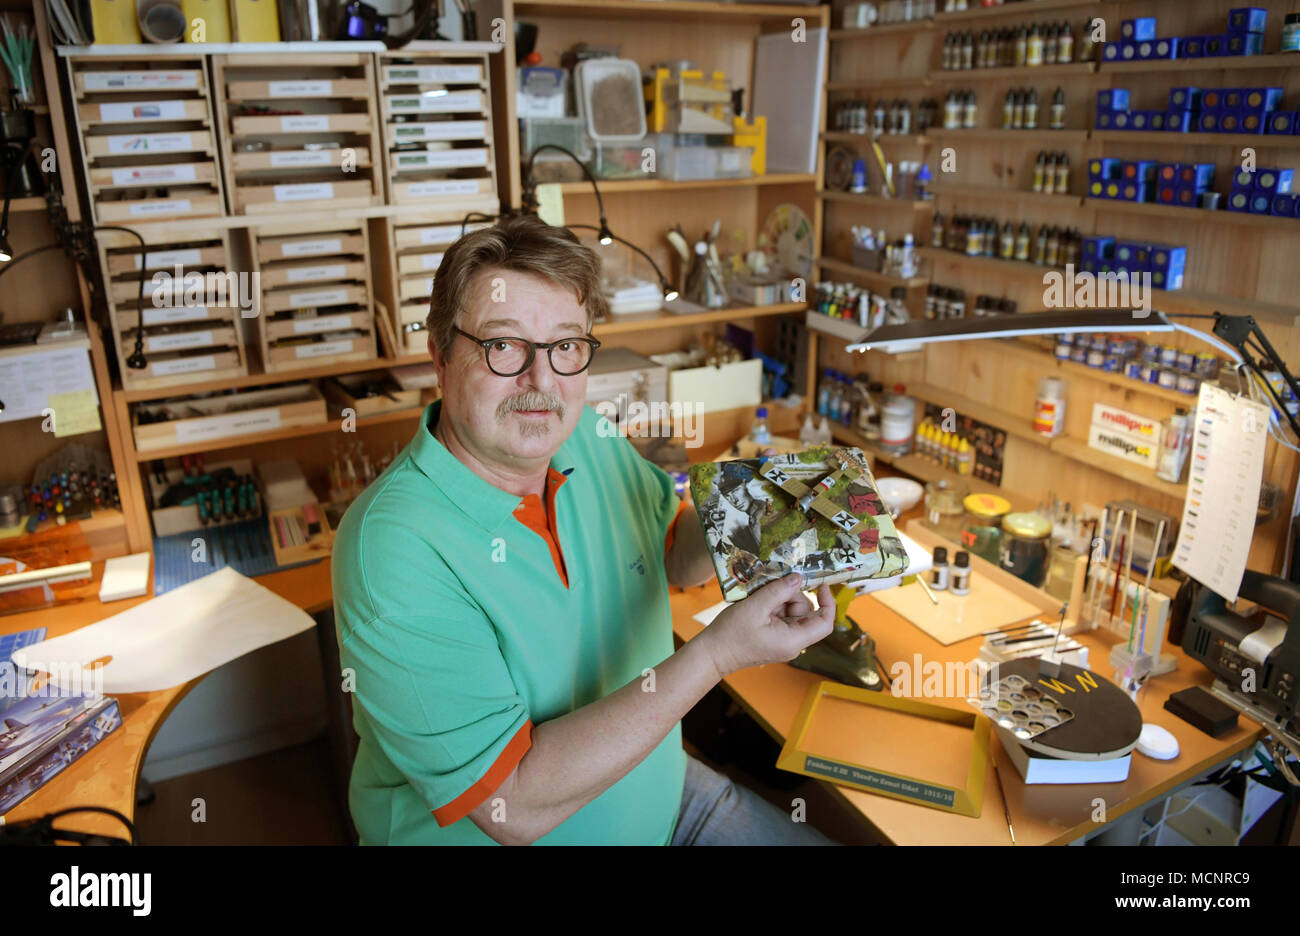 17 April 2018, Duesseldorf, Germany: The model builder Lutz Bellmann sitting with a Revell model in his private workshop. After the bankruptcy of the parent company Hobbico in the USA, the model builder company is to be sold to a Munich investor group. Photo: Ina Fassbender/dpa - Stock Image